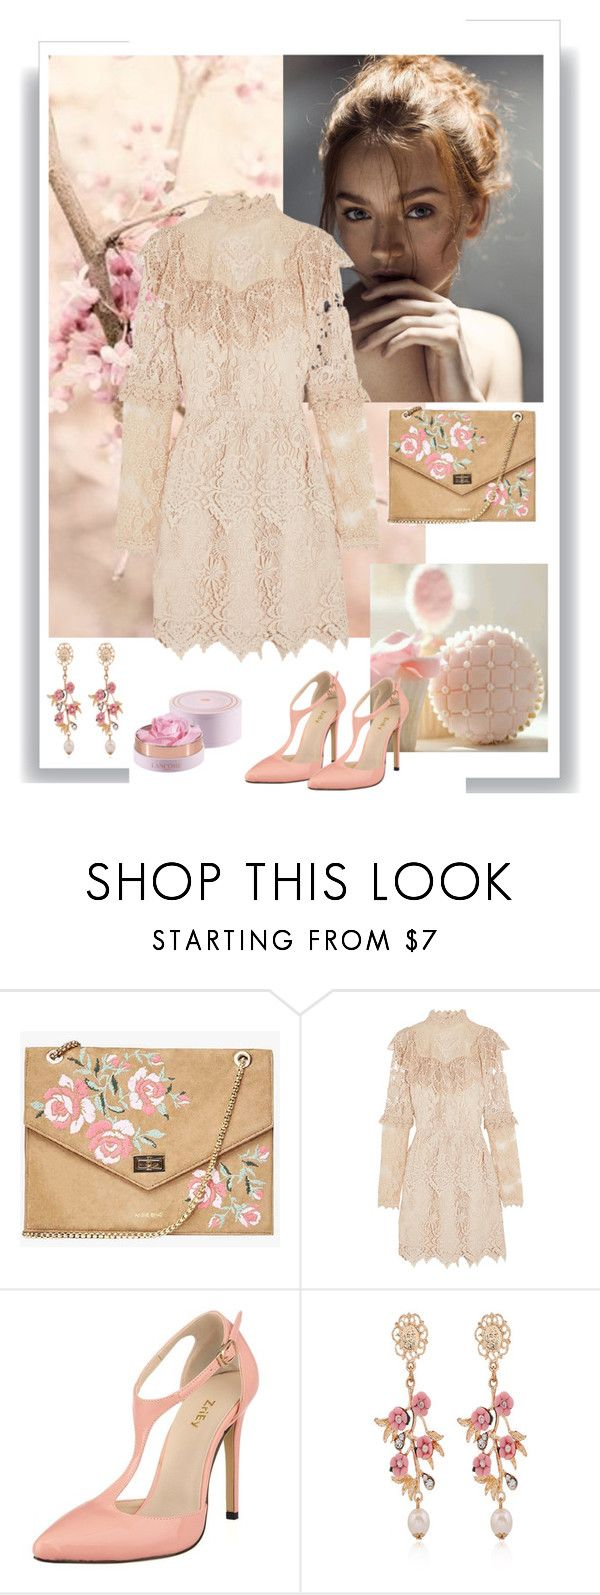 """""""Blind date"""" by gagenna ❤ liked on Polyvore featuring Anna Sui, WithChic, polyvorecontest and blinddate"""